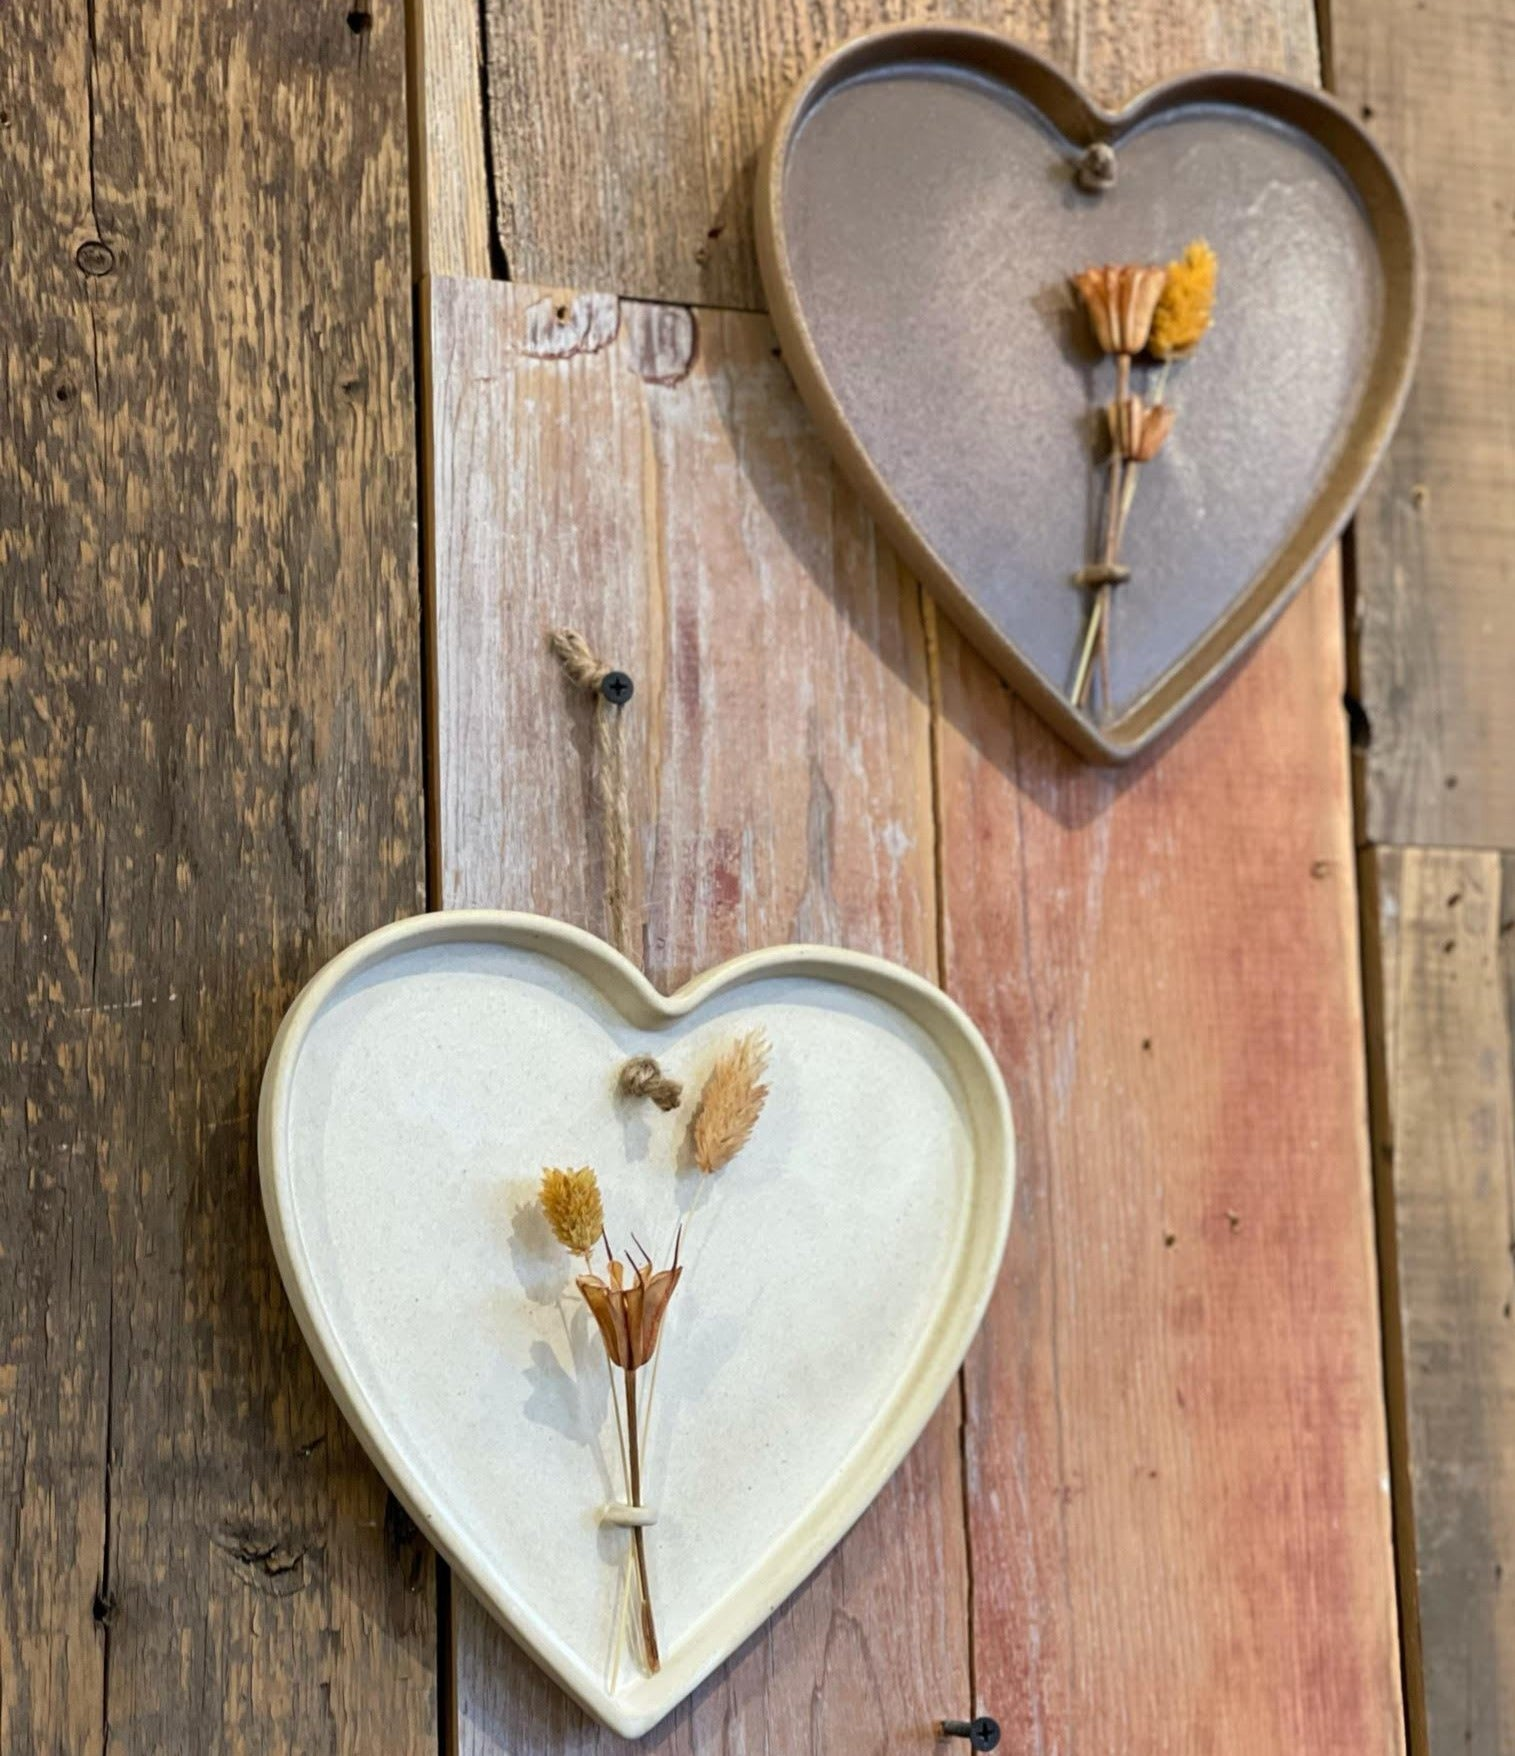 Heart Dried Flower Decor